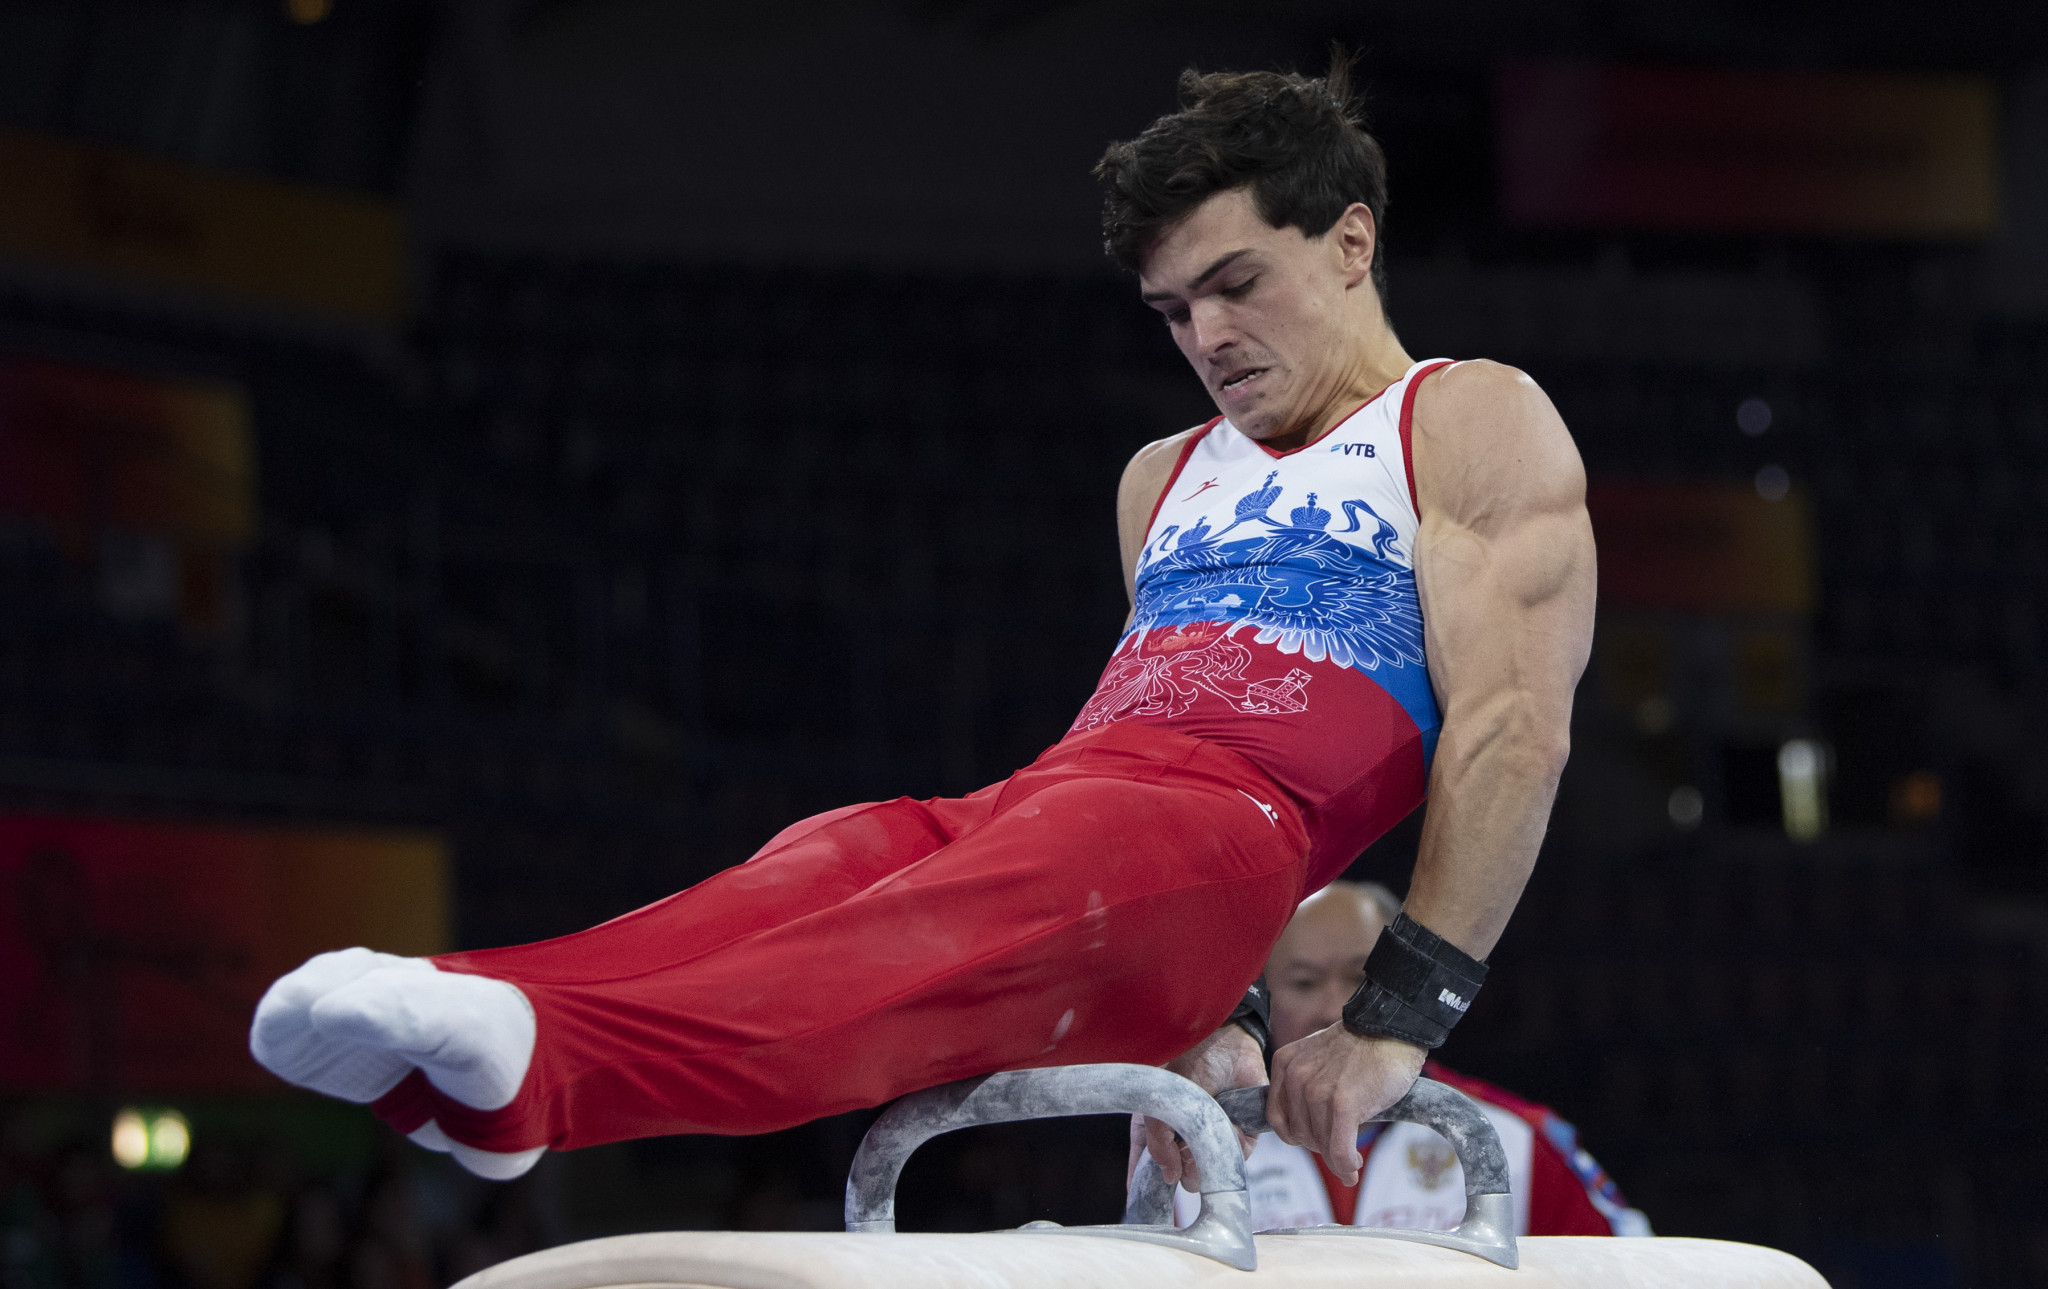 Artur Dalaloyan will defend his men's all-around world title ©Getty Images